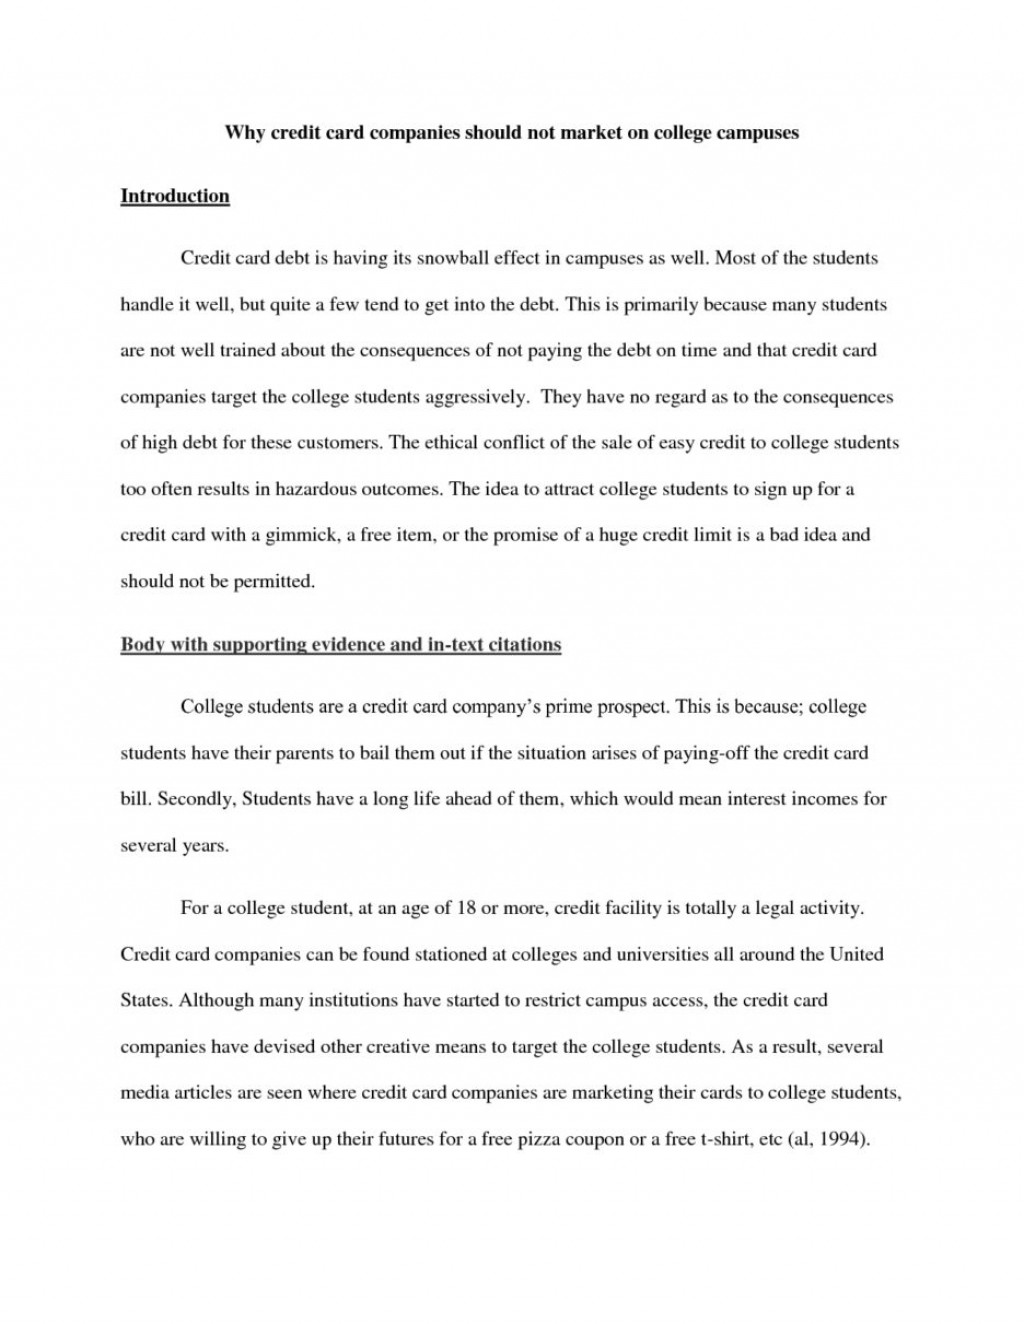 020 Brilliant Ideas Of Exampless Essay Stunning For High School Students Pare And Contrast About Good Analysis Examples Marvelous Process Funny Large